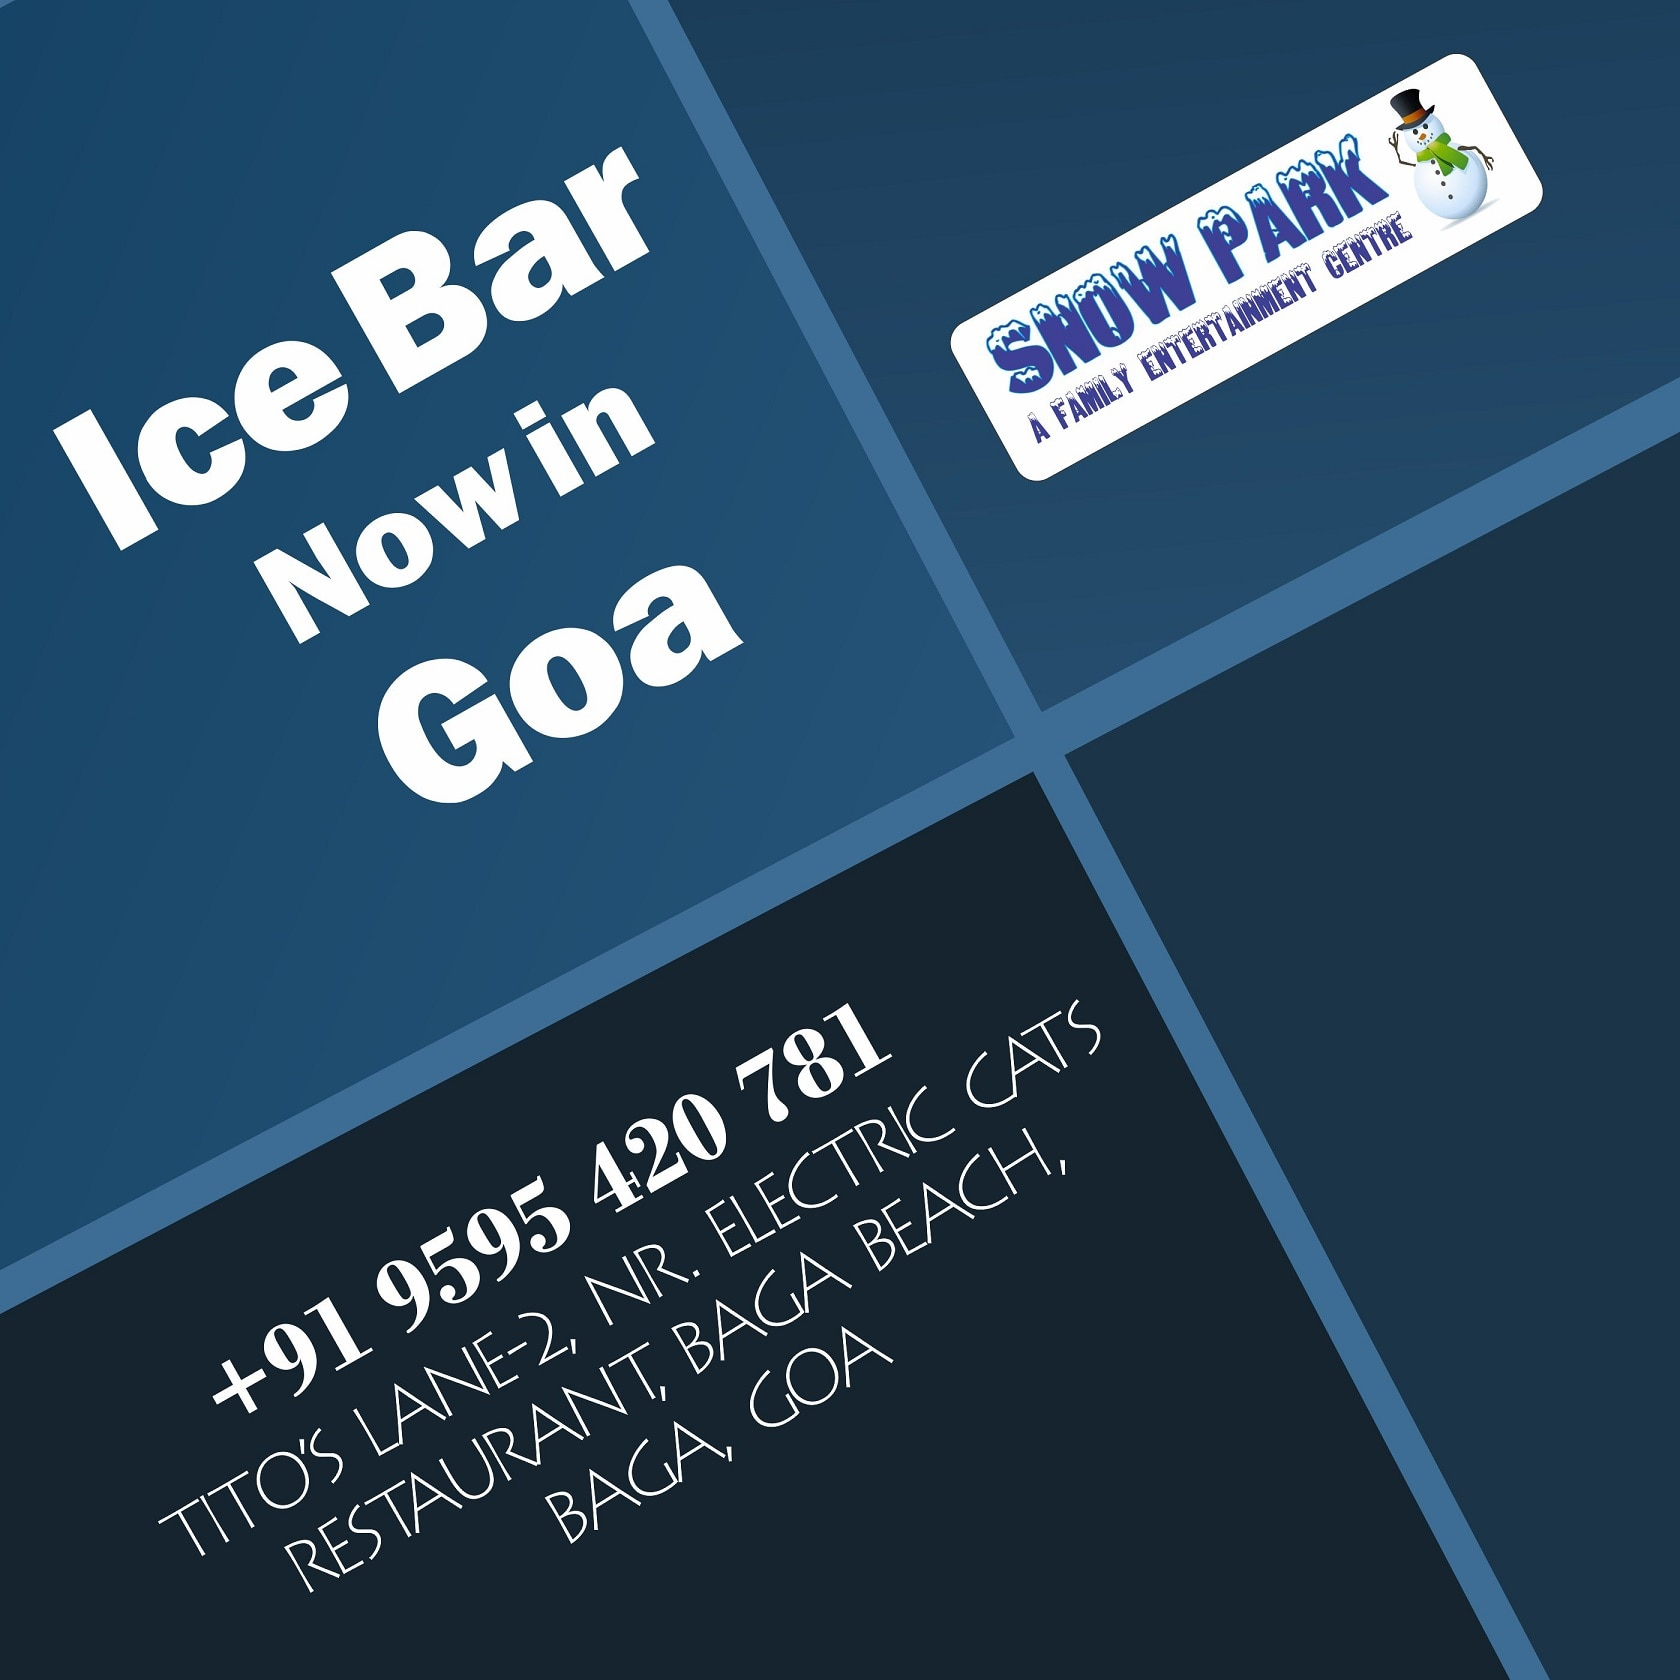 Time to run and play, have a snowball fight and dance! Bring your friends and family too #Snowpark #Goa